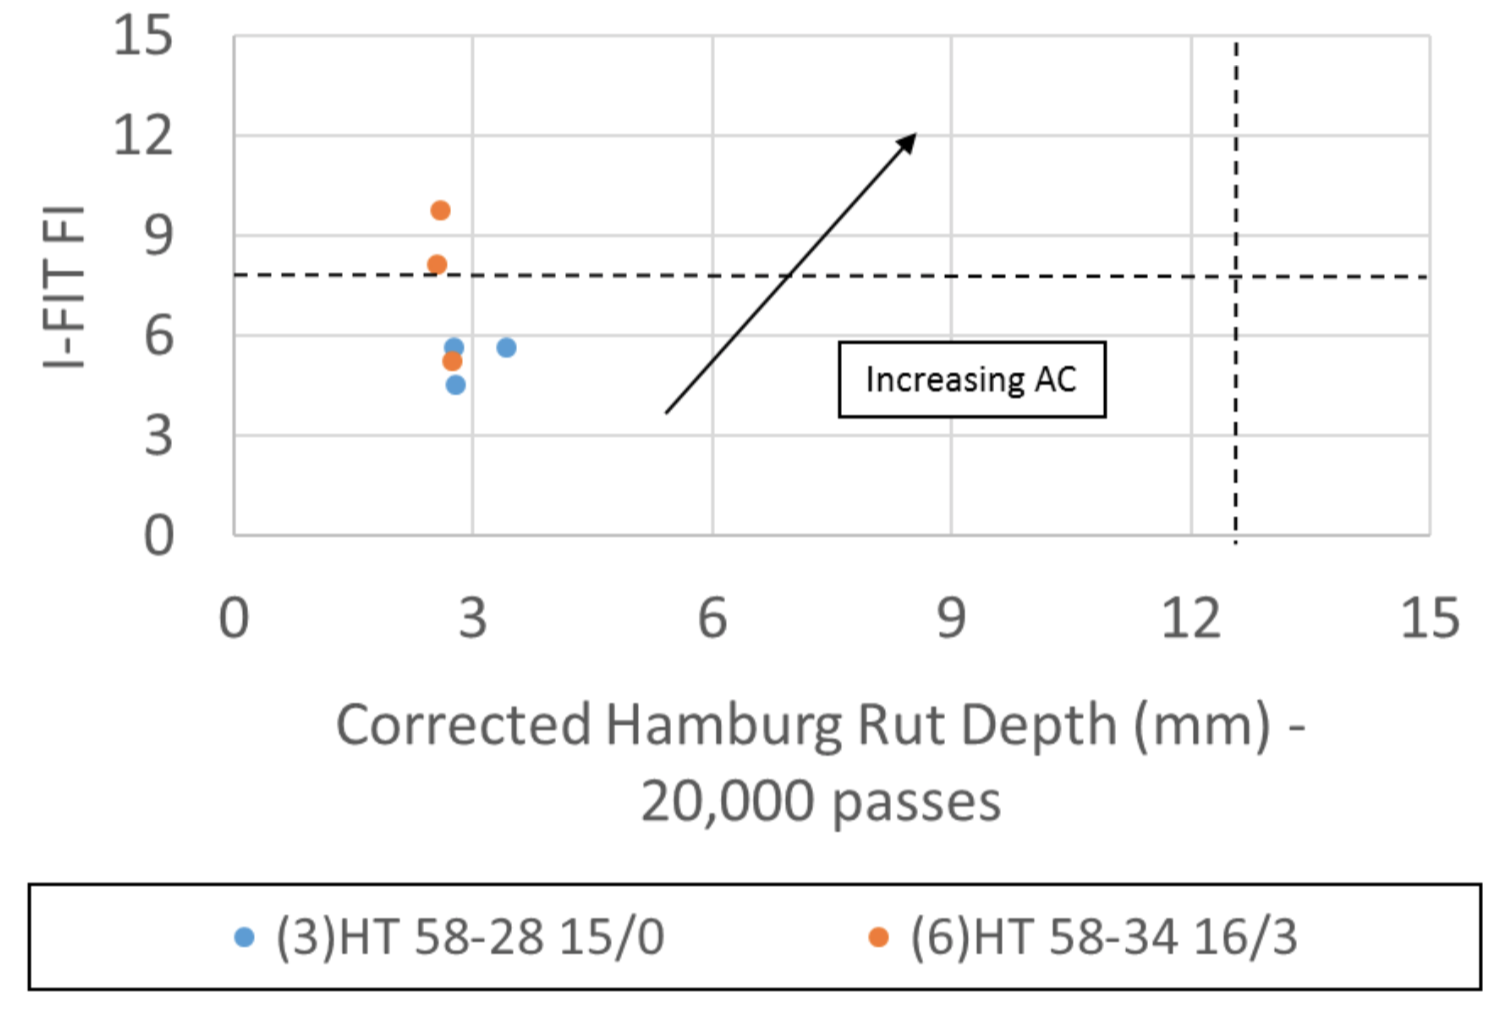 Figure 3 Performance Diagram of I-FIT FI versus Corrected Hamburg Rut Depth for High Traffic Mixes